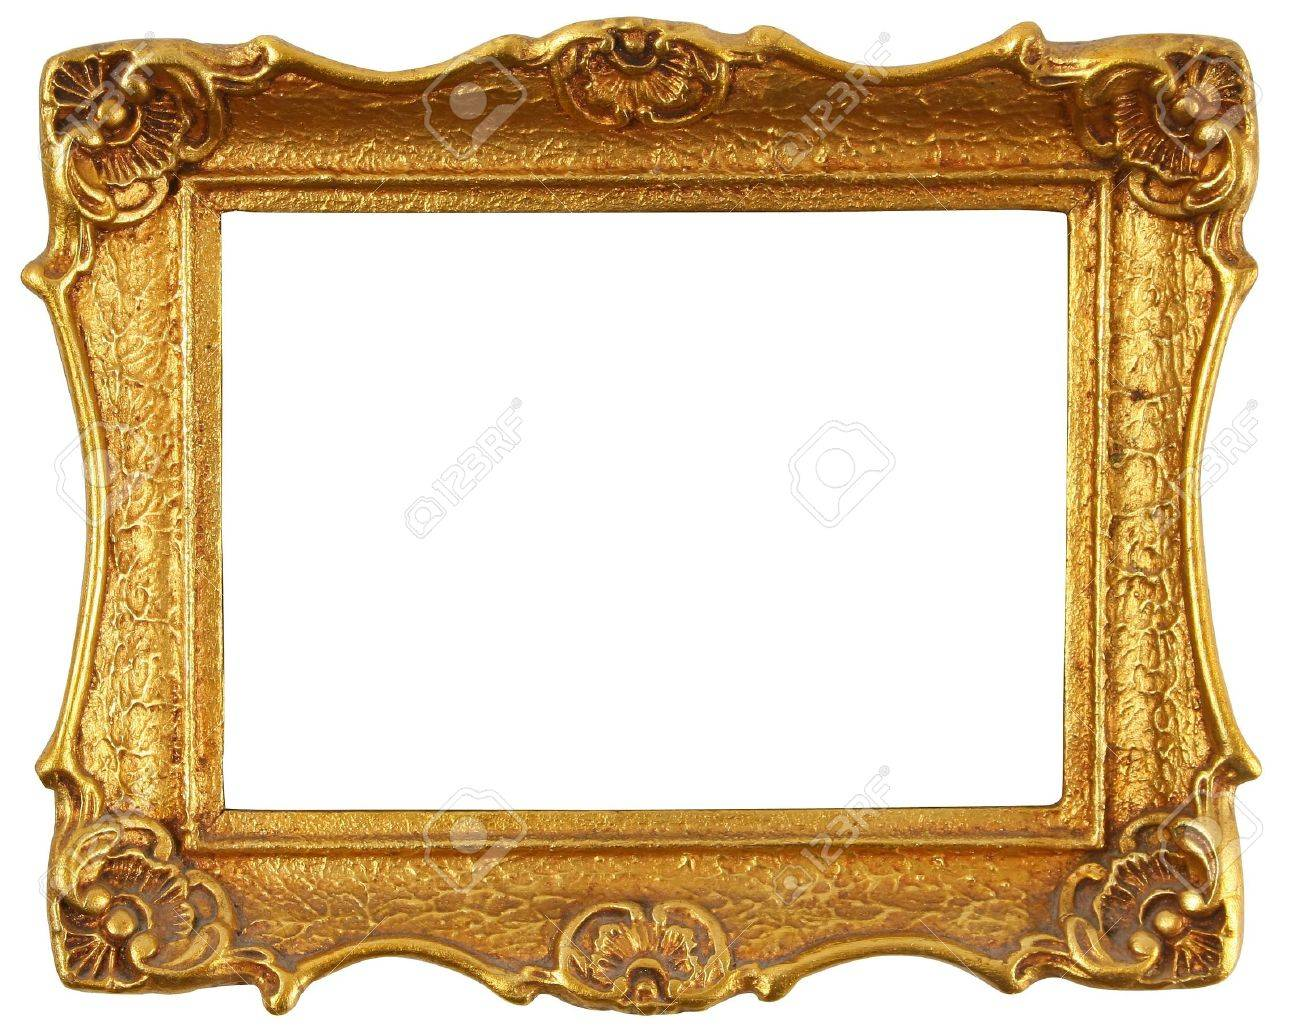 Old Antique Gold Frame Over White Stock Photo, Picture And Royalty ...